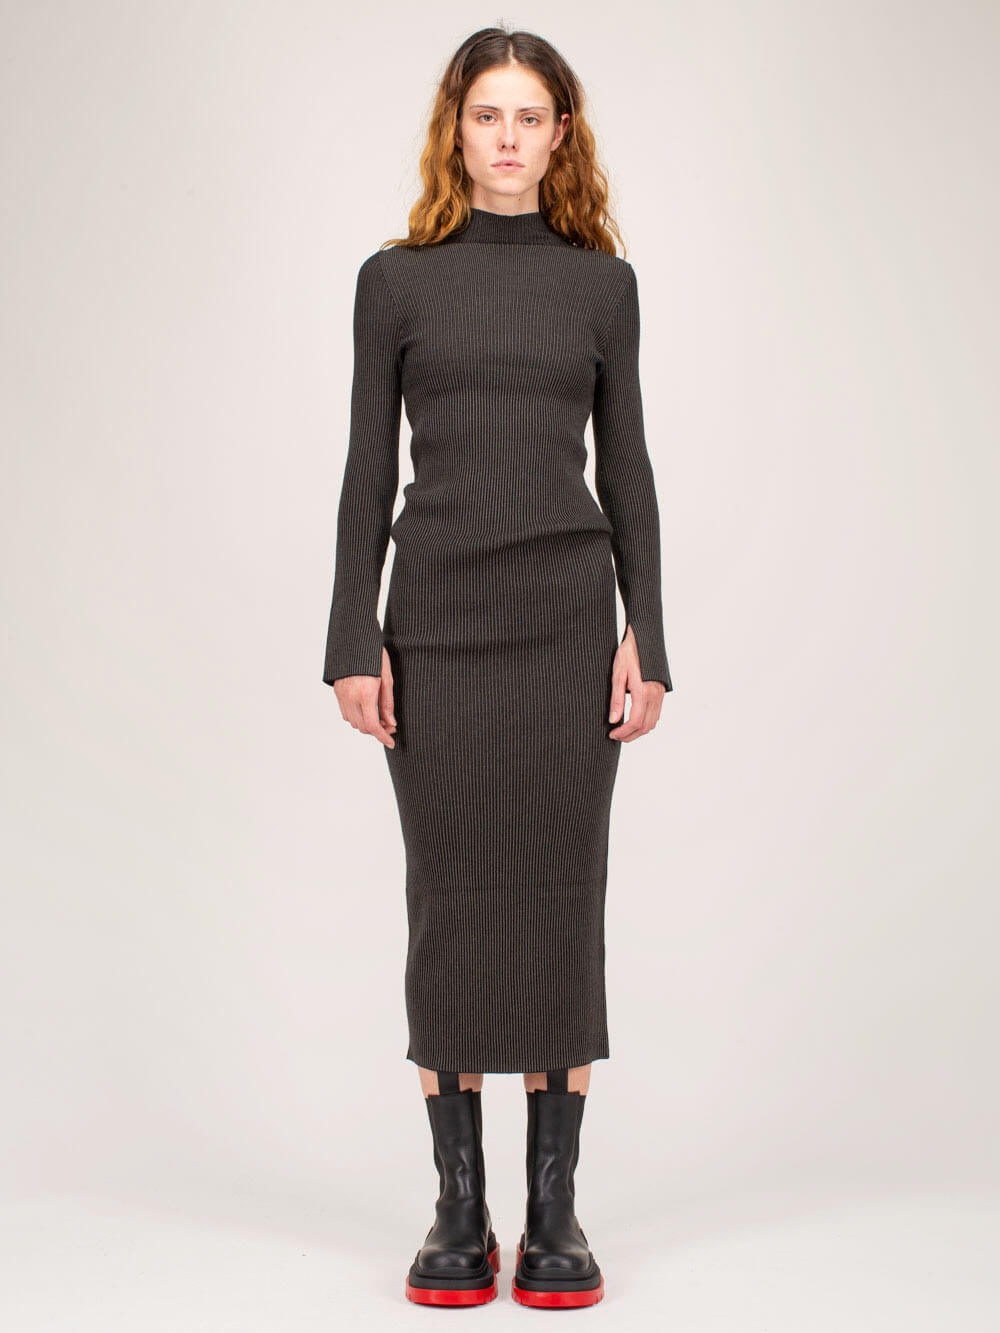 Cavea Dress - Hunt